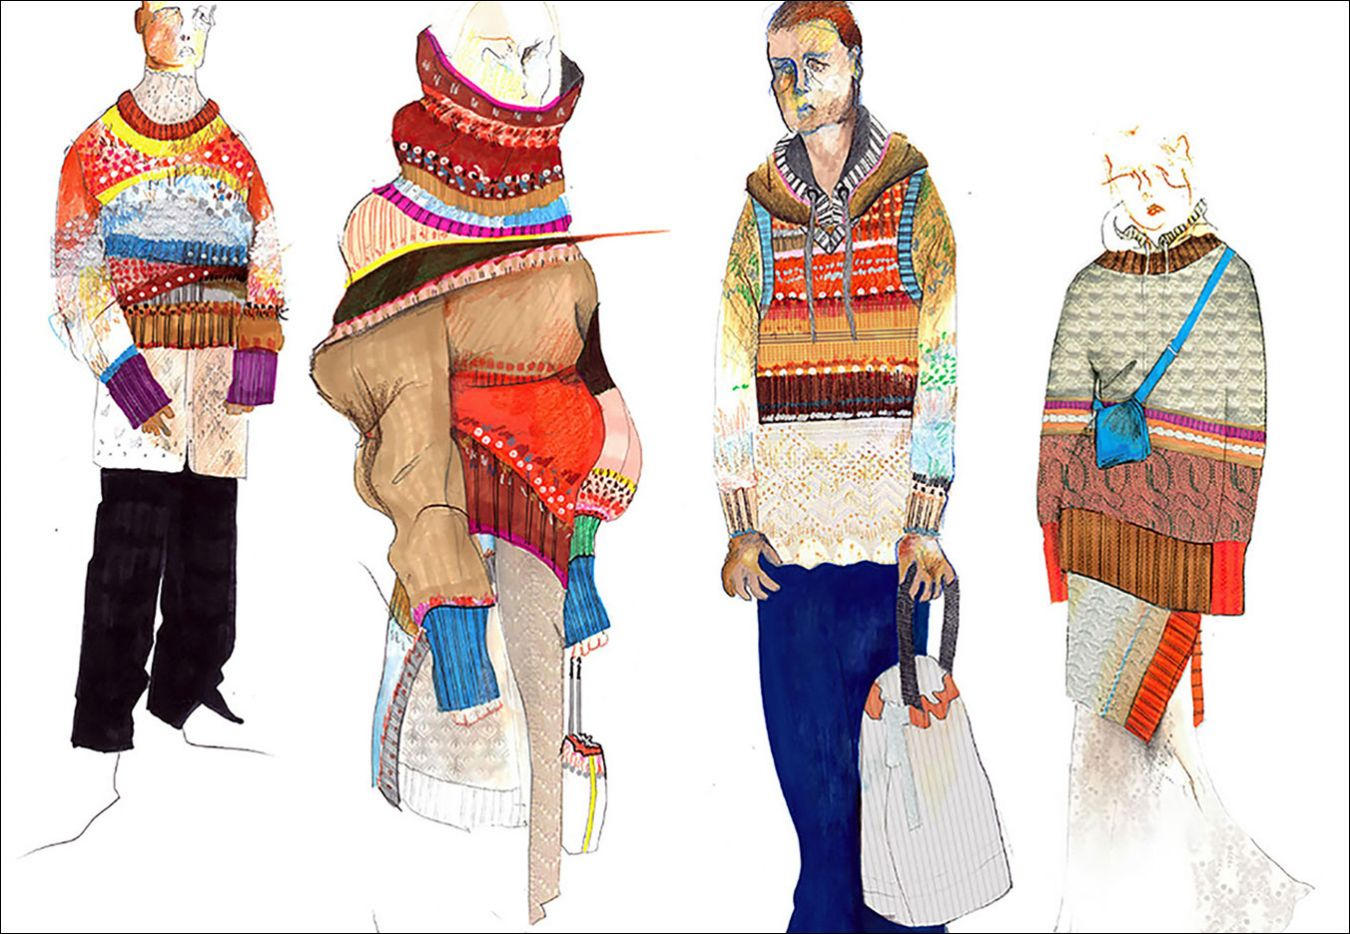 BA (Hons) Fashion student Nandita Shah used bold colours for the knitwear designs in her final collection. Kingston School of Art places emphasis on strong illustration skills.